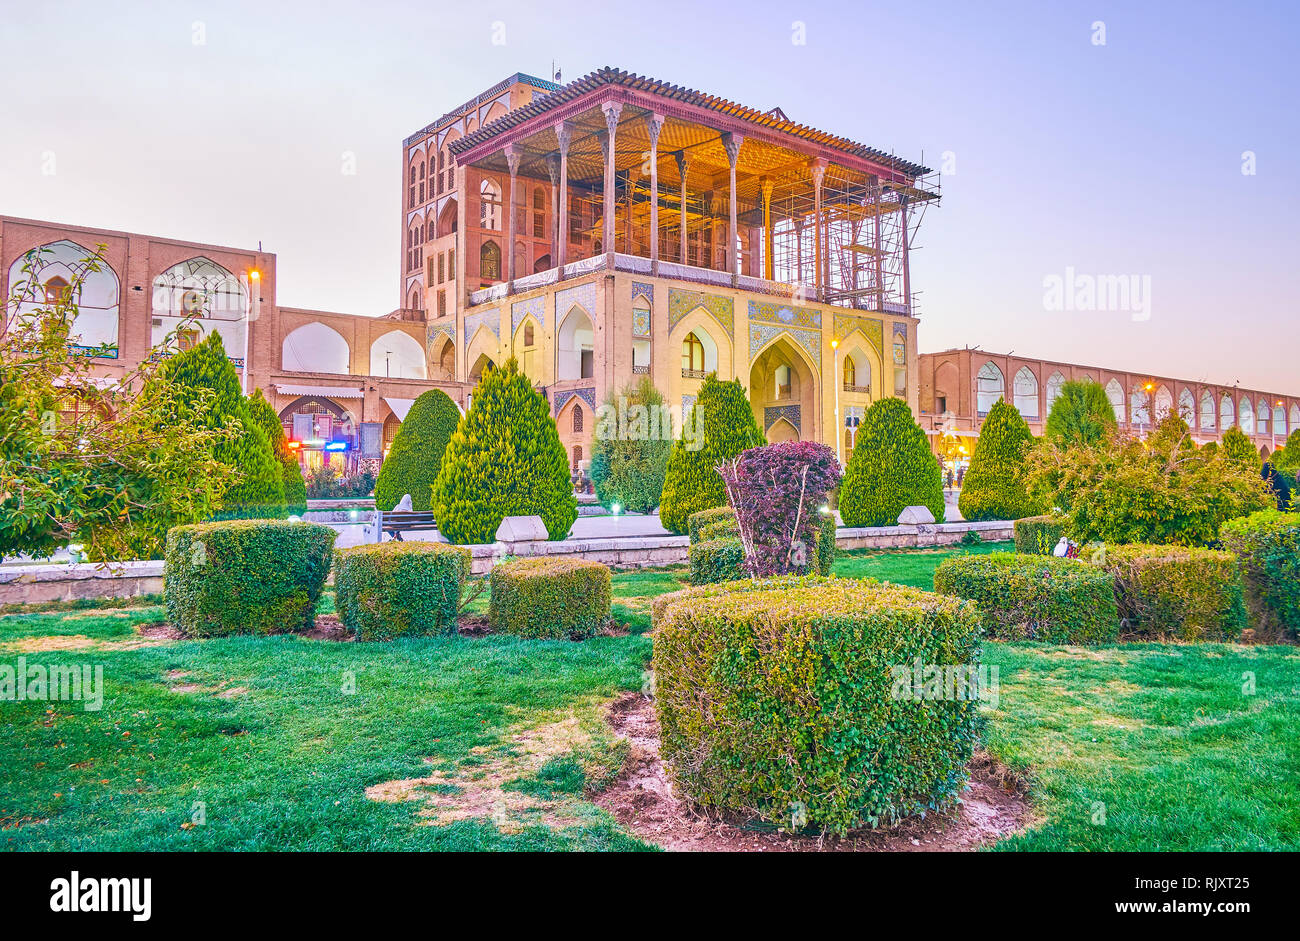 ISFAHAN, IRAN - OCTOBER 19, 2017: Ali Qapu Palace is the most beautiful buildings in Isfahan, was the residence of Persian Shah, on October 19 in Isfa Stock Photo